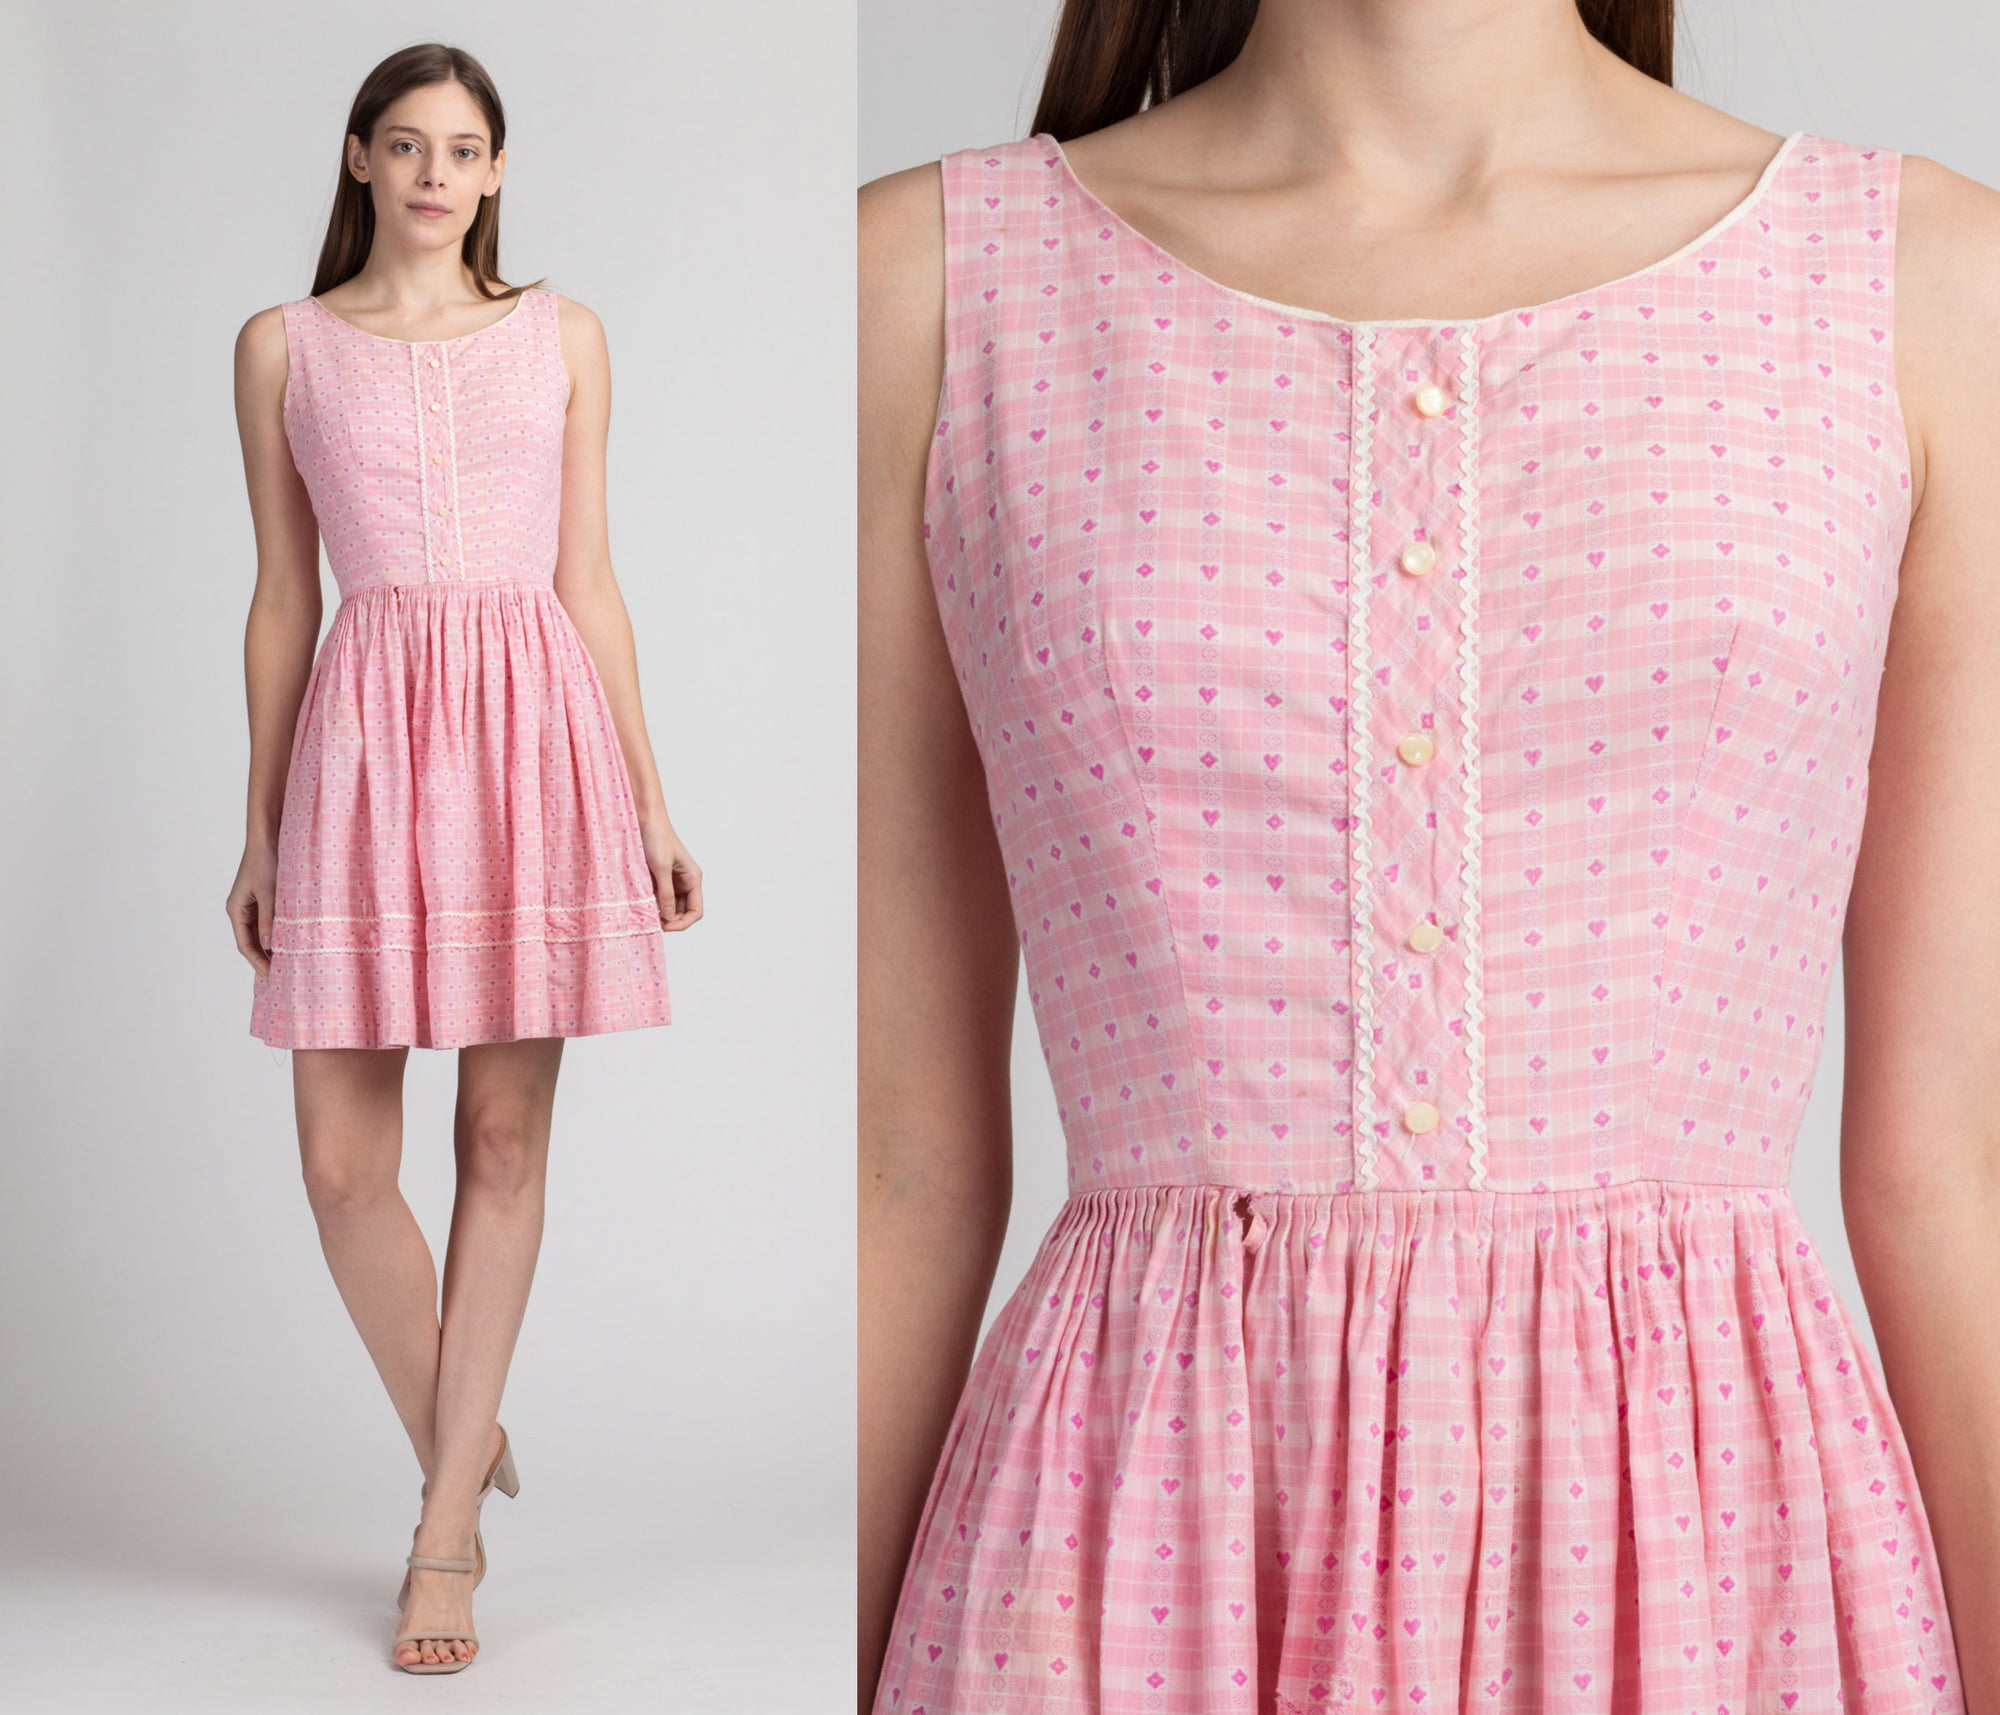 60s Pink Heart Print Gingham Mini Dress, As Is - Extra Small | Vintage Sleeveless Fit & Flare Retro Girly Dress